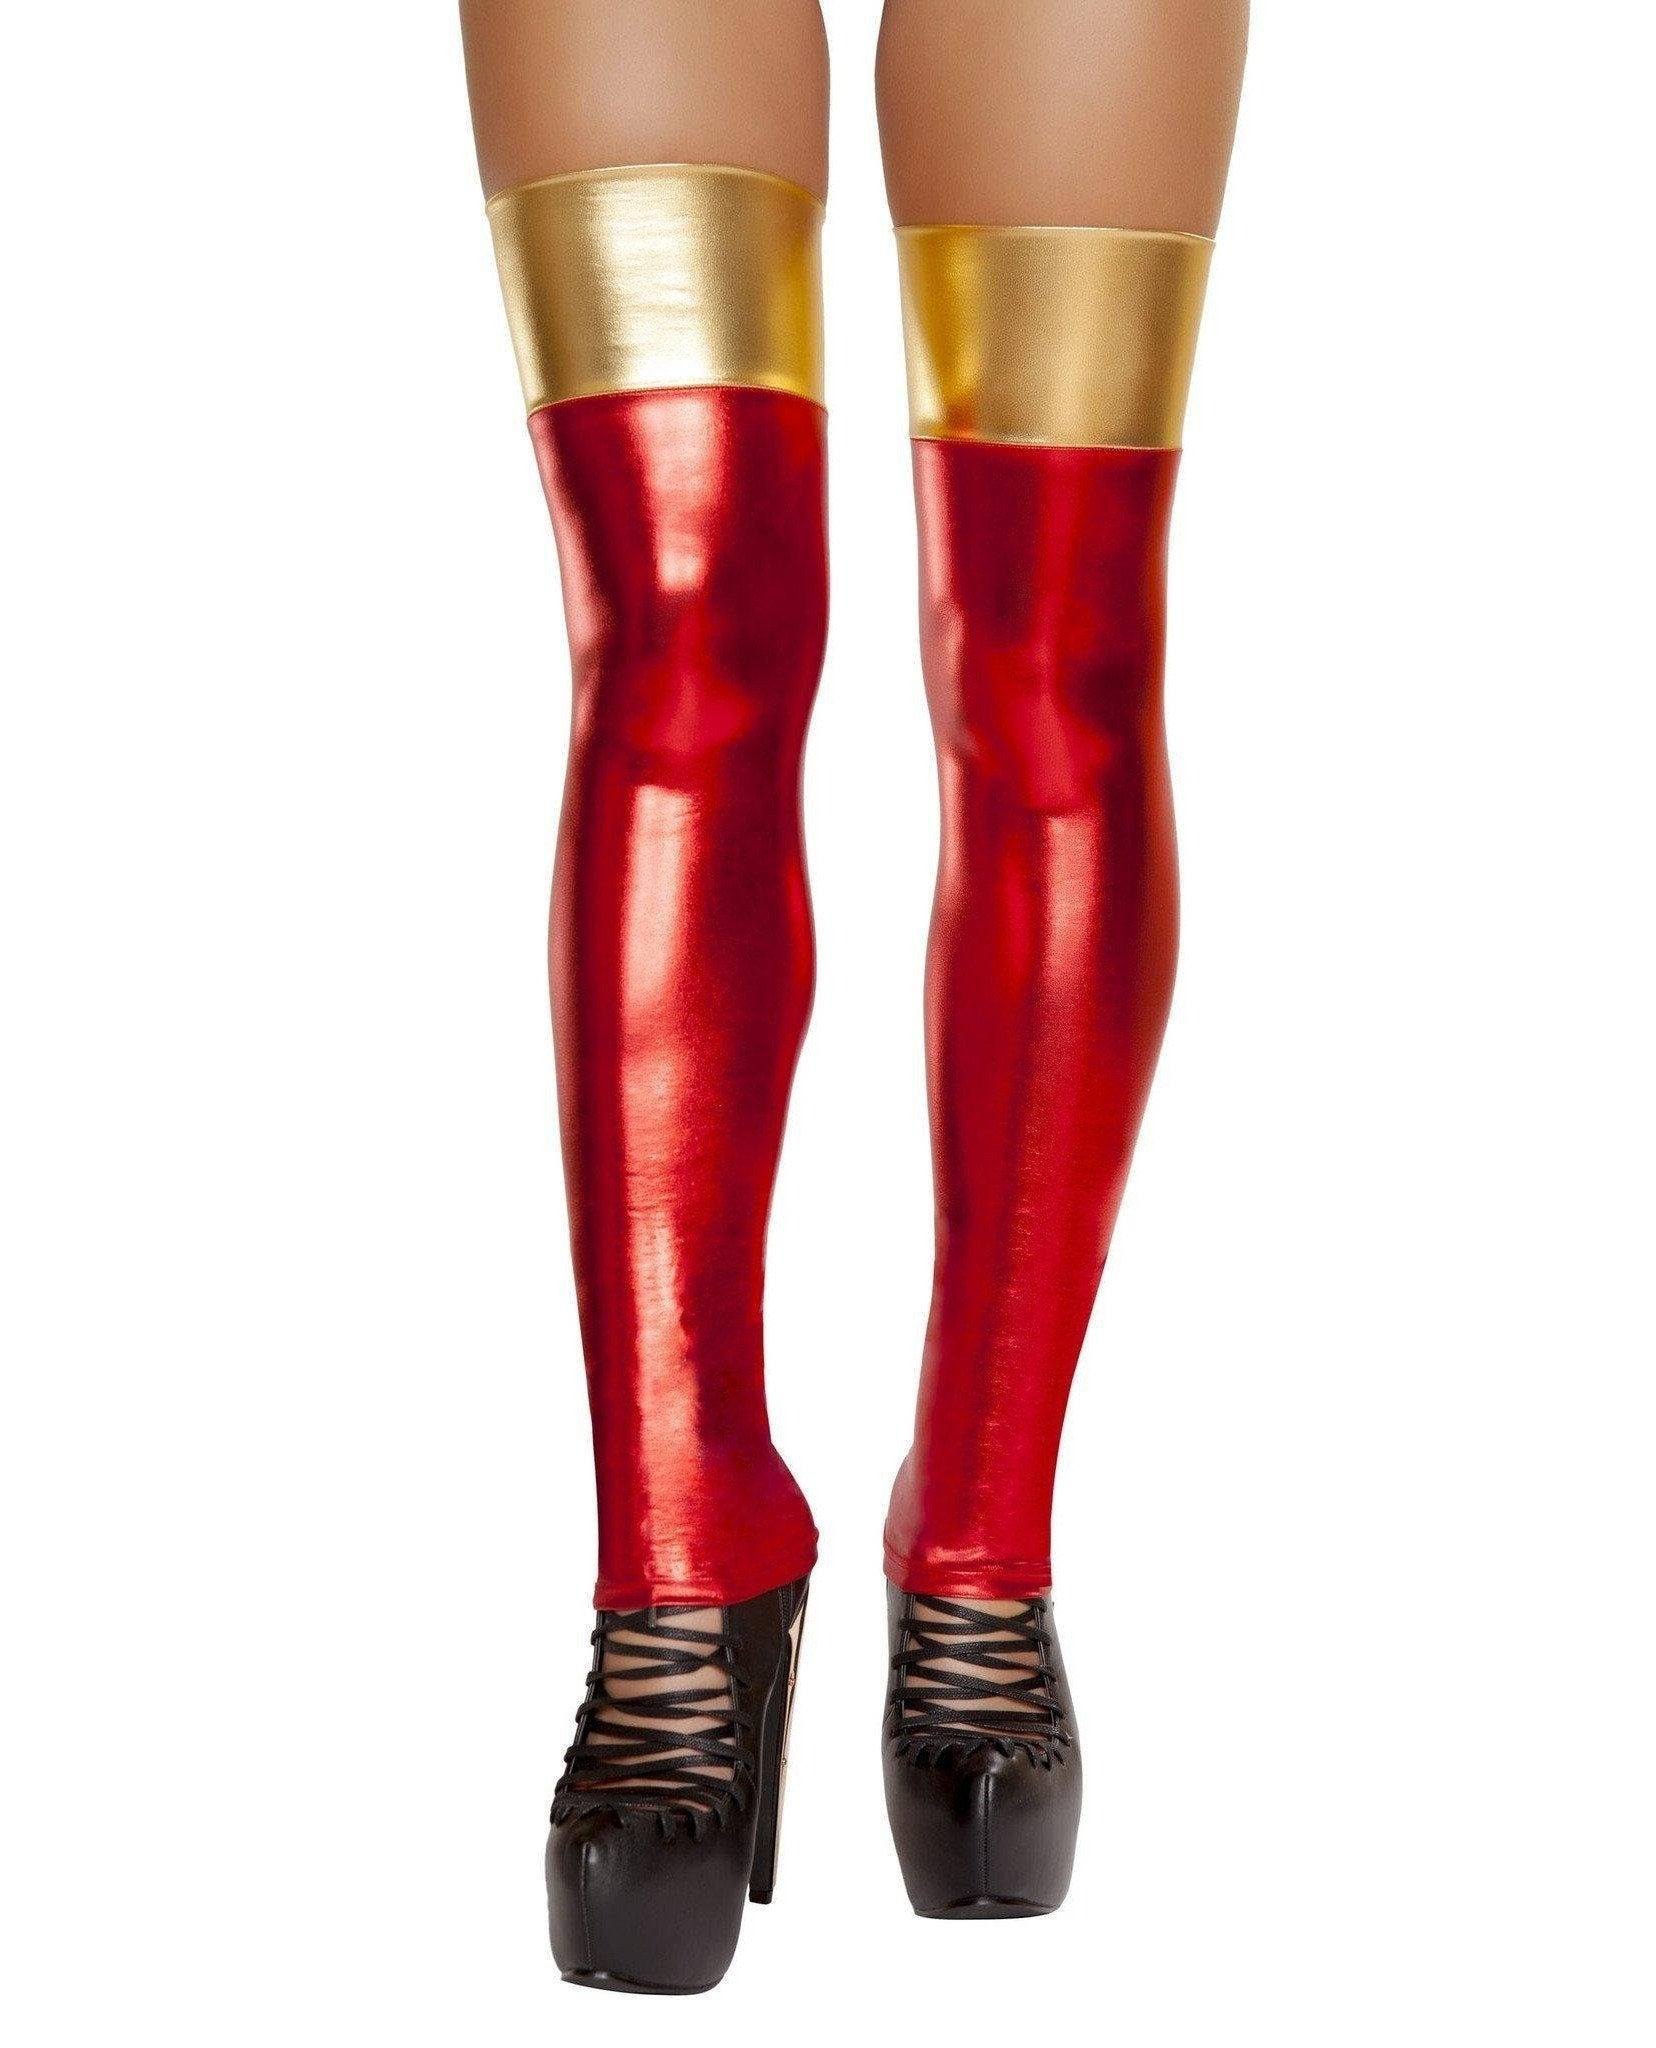 Iron Woman Thigh High Stockings Costumes, accessories Size One SizeColor Red/GoldNakees